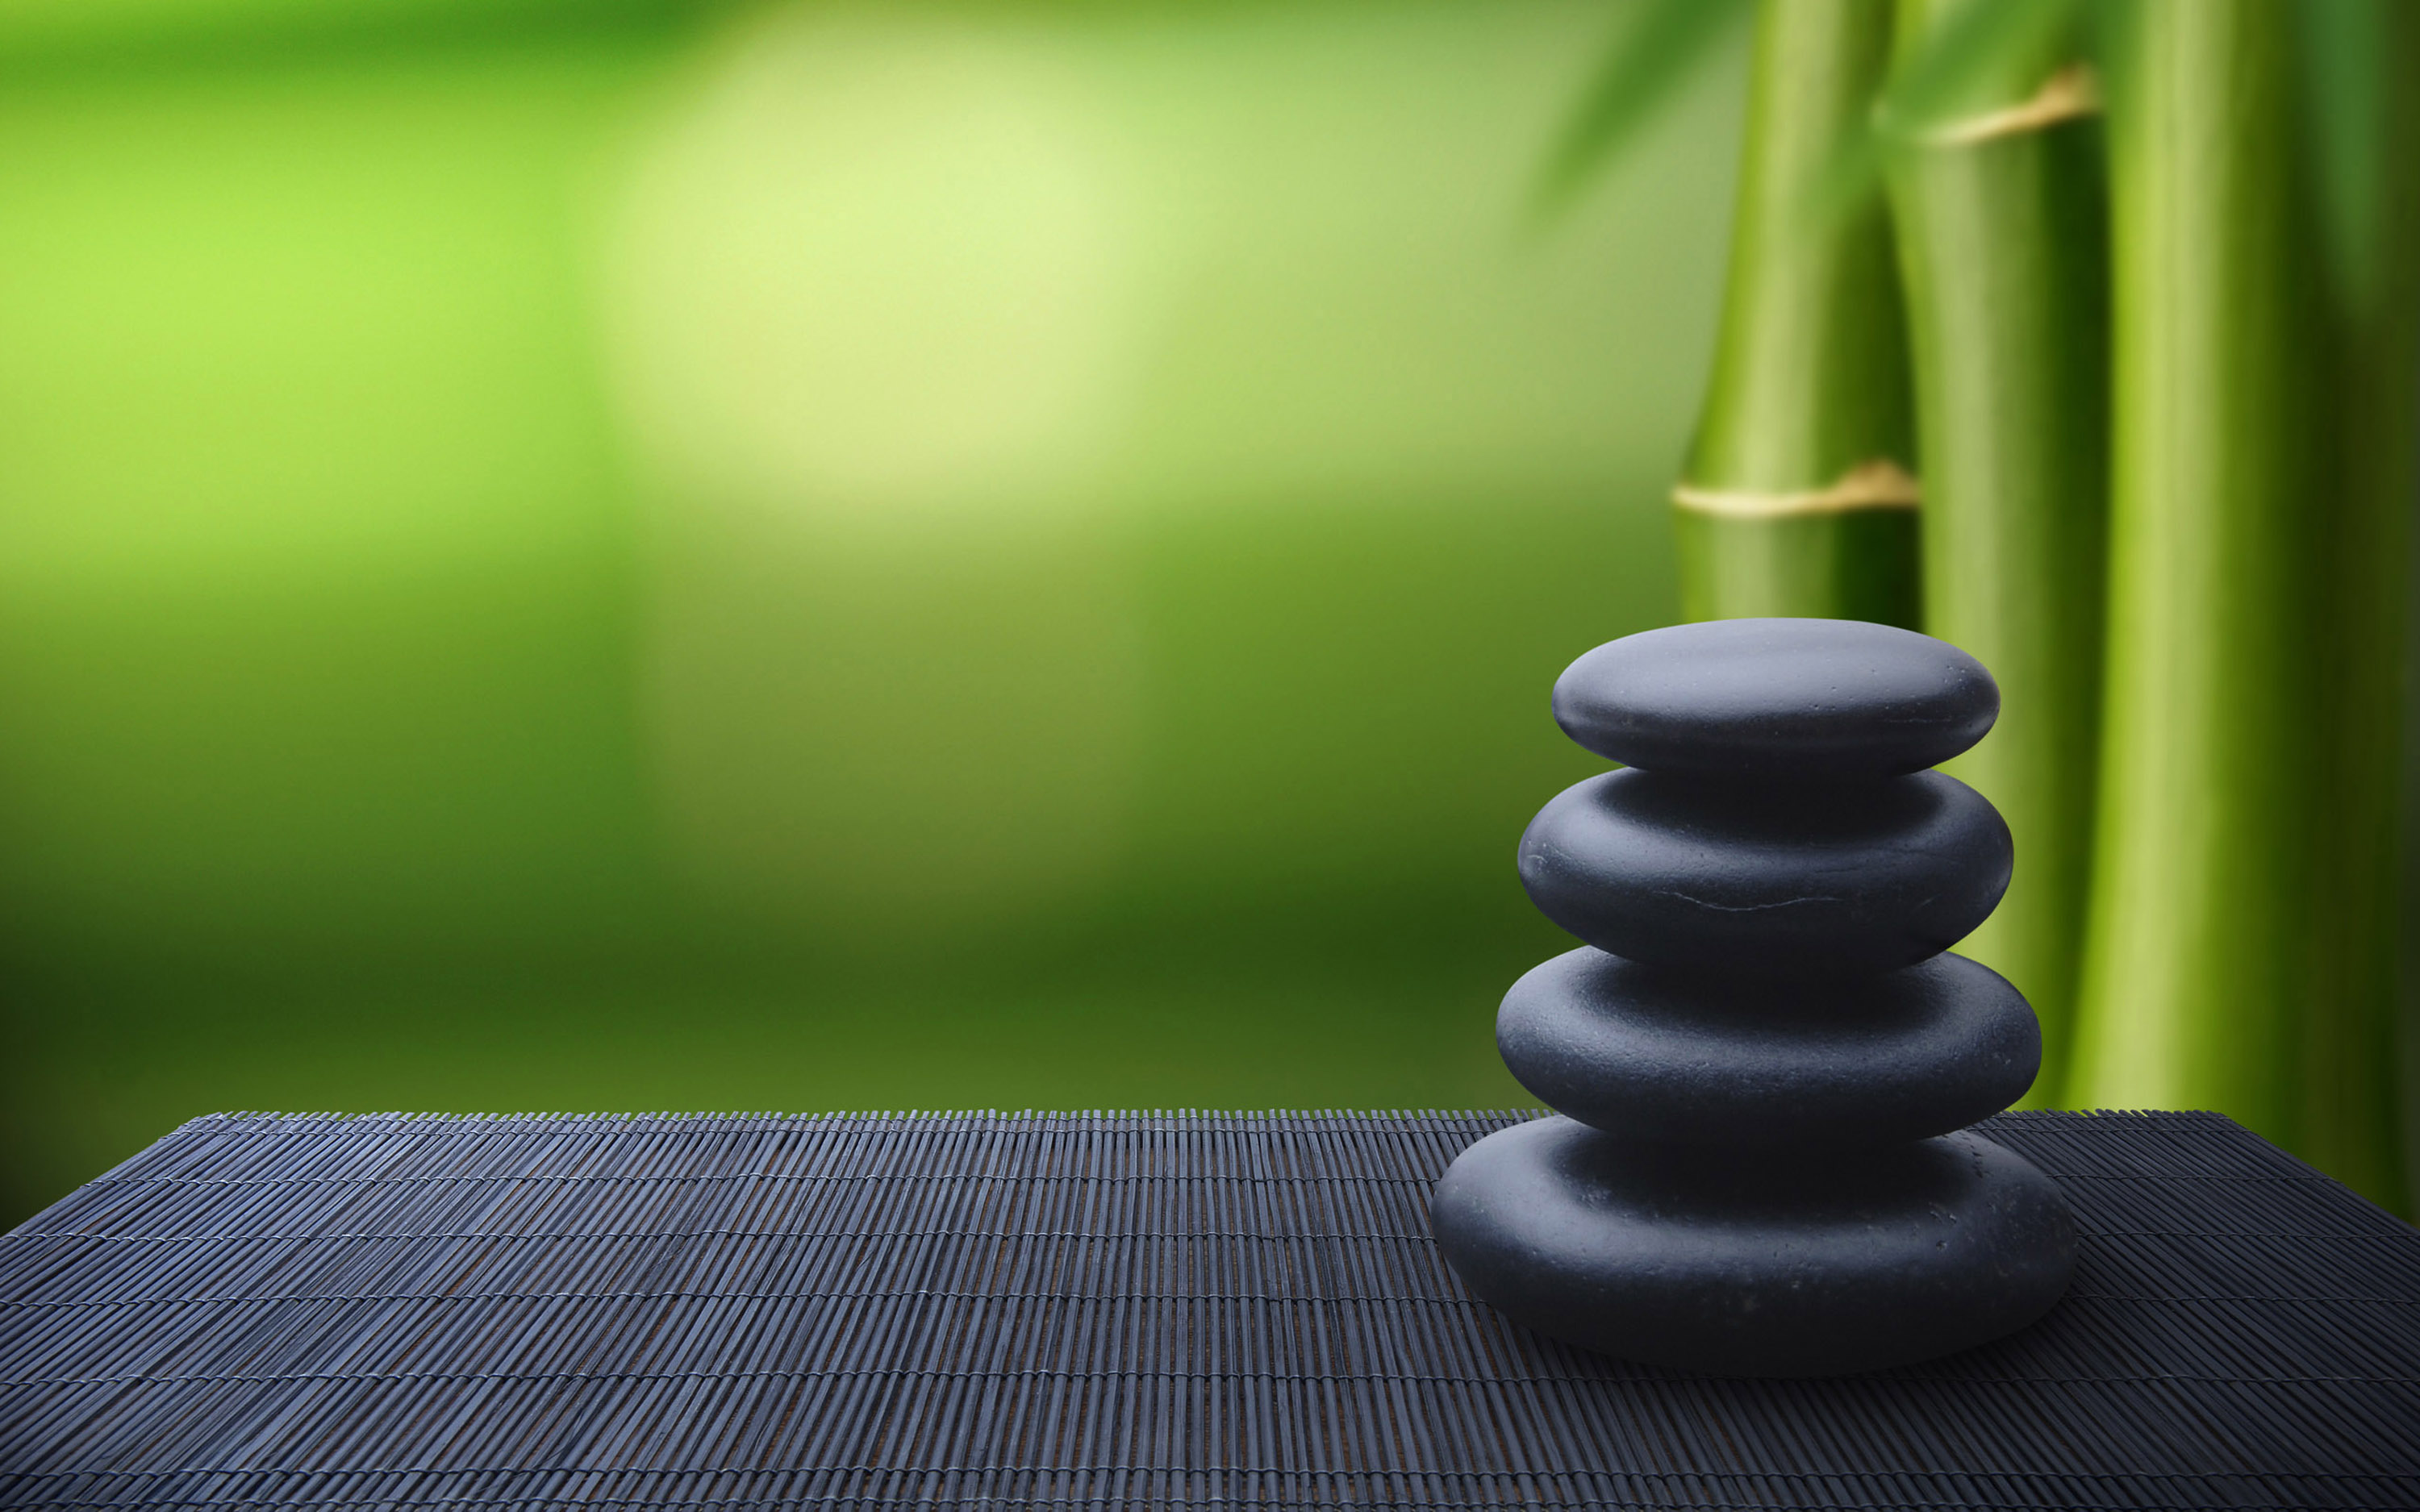 Zen full hd fondo de pantalla and fondo de escritorio 3000x1875 id 209102 - Wallpaper volwassen kamer zen ...